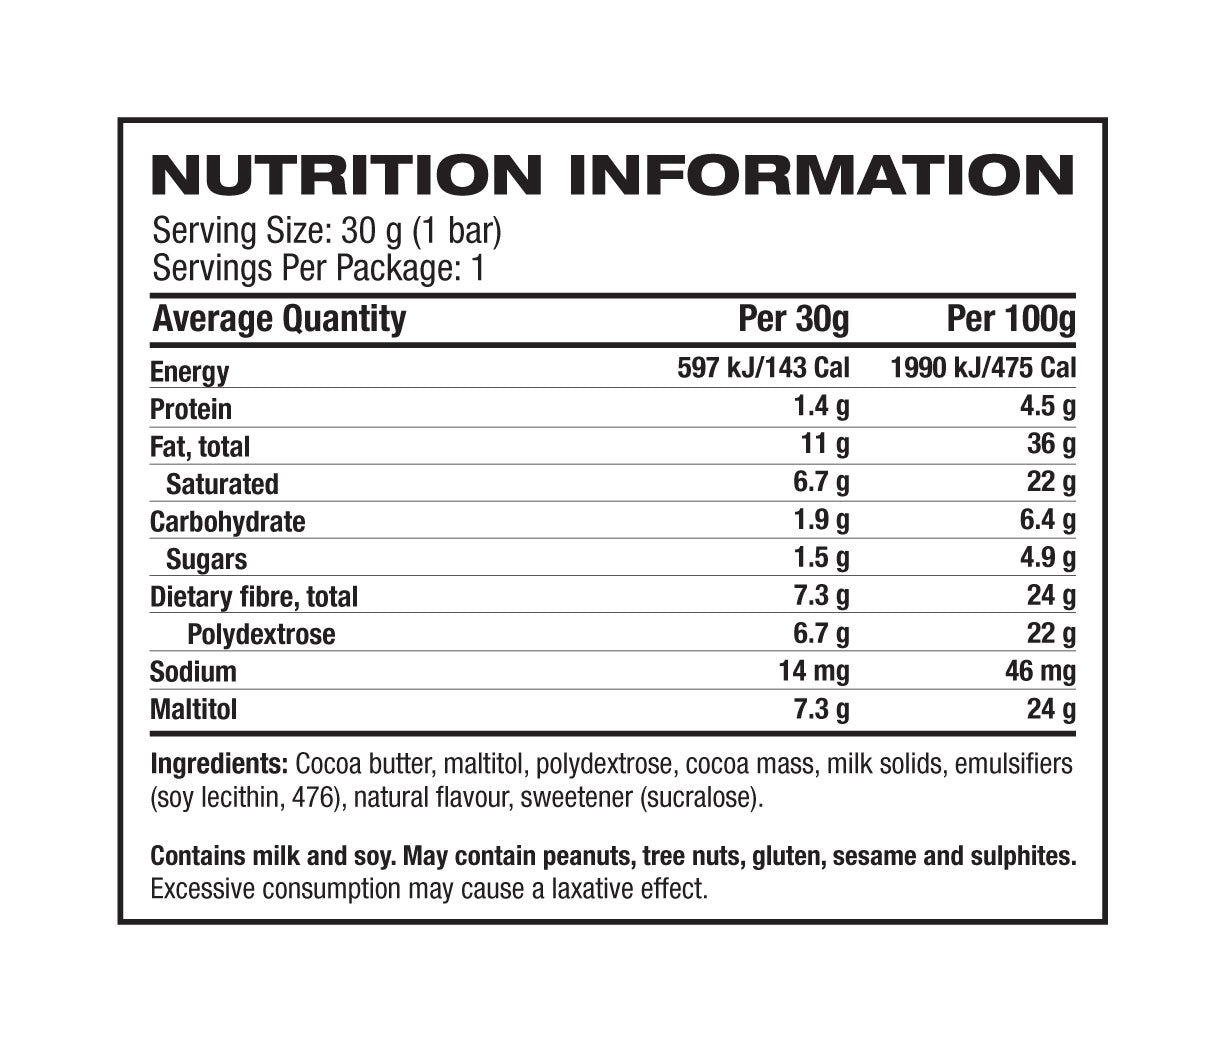 Nutrition Facts For Atkins Endulge Bar 15 Box